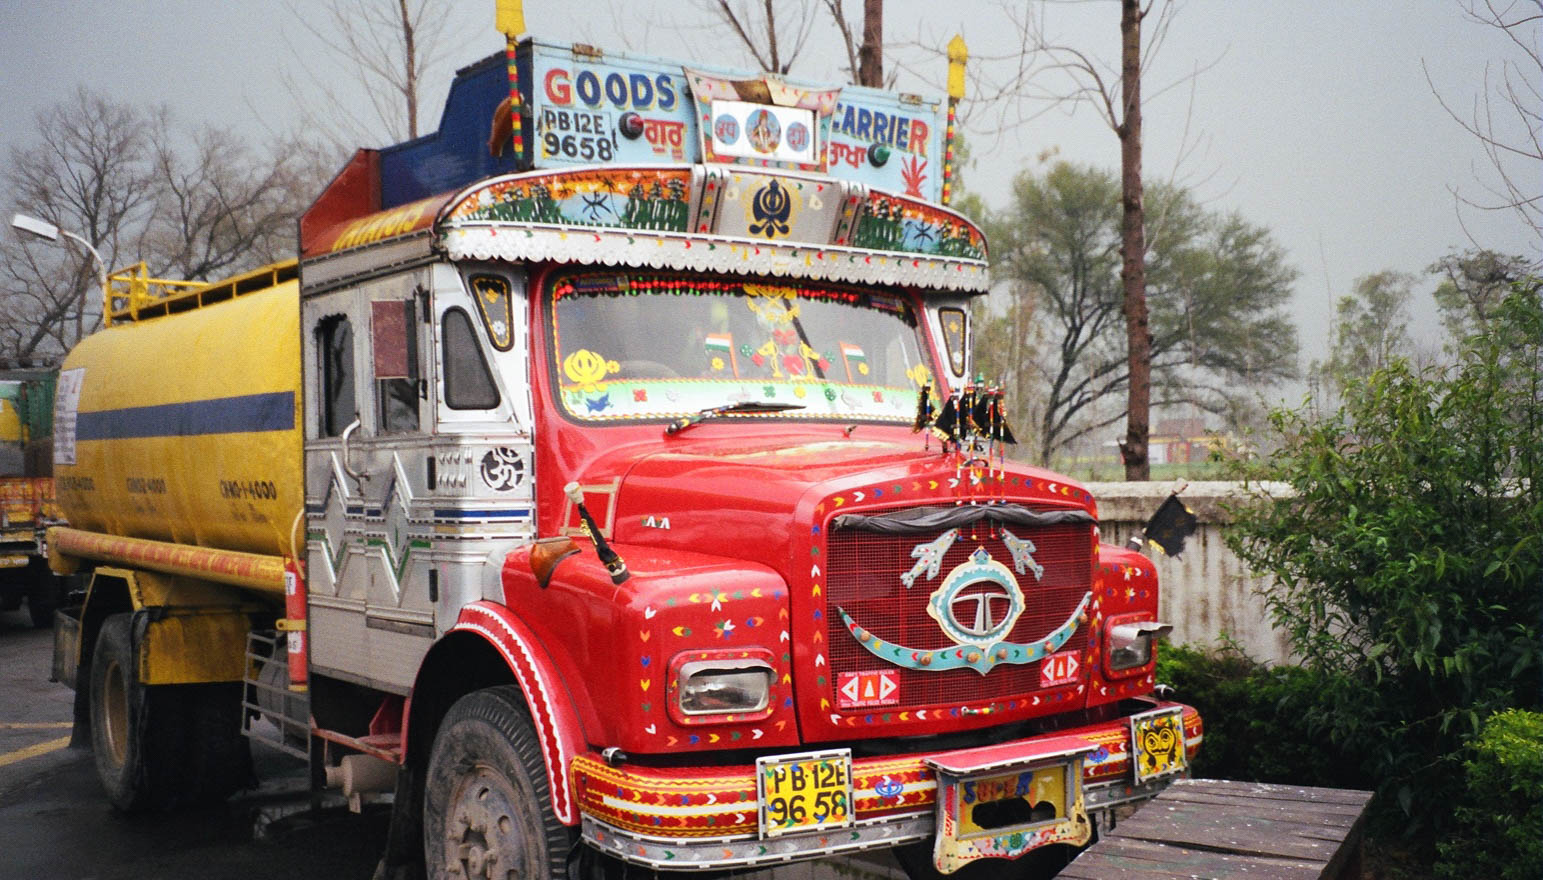 Indian truck art and Pimped up rides : Media India Group